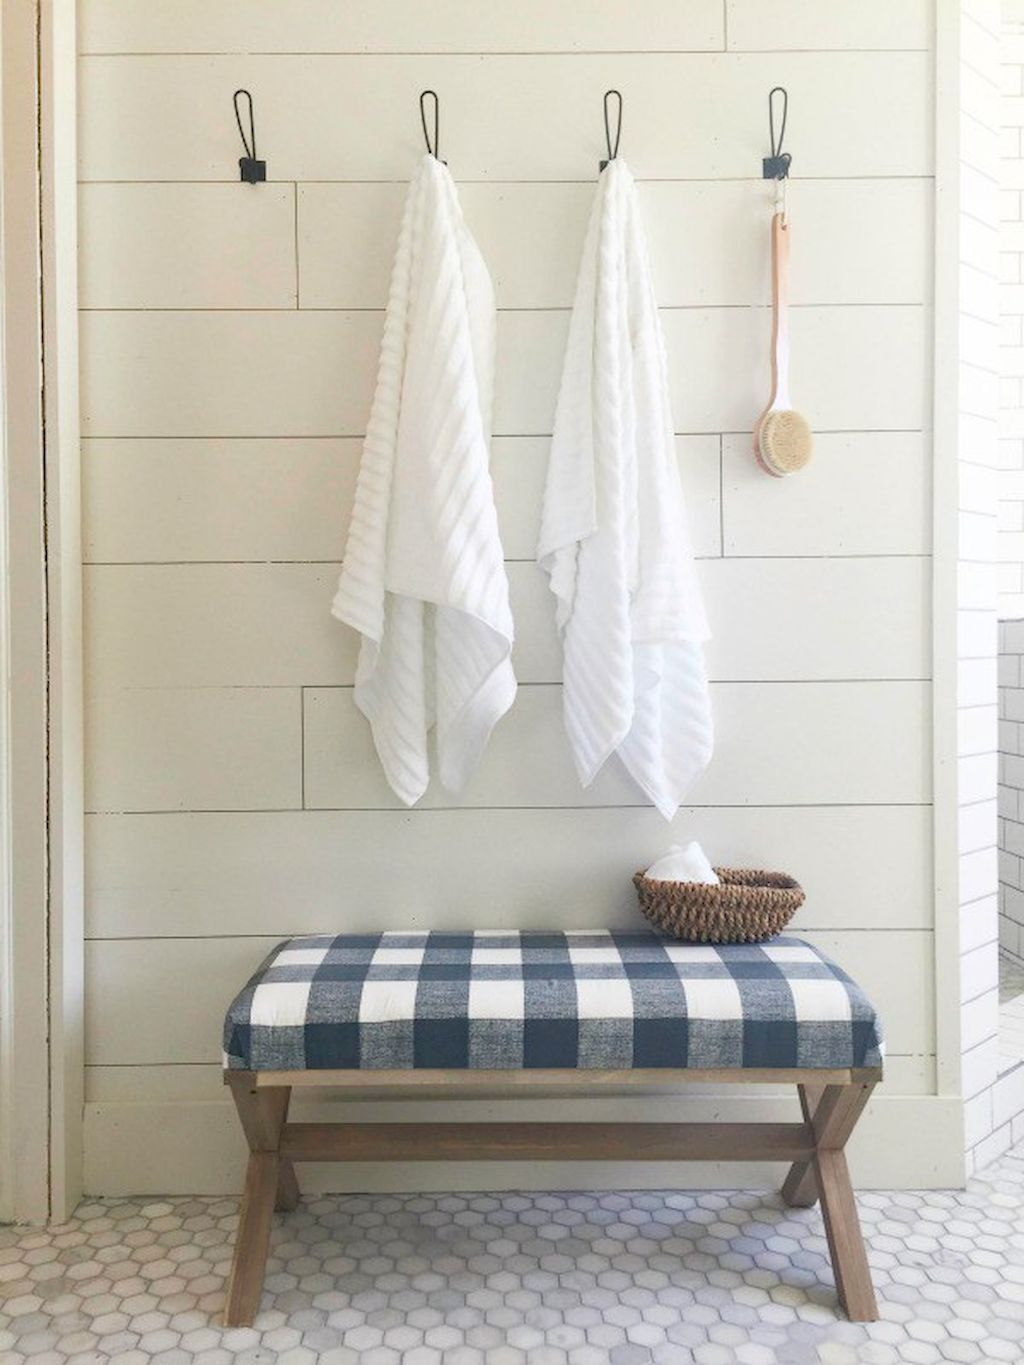 Fabulous 65 Rustic Farmhouse Bathroom Decor & Design Ideas | Rustic Farmhouse within Bathroom Bench Ideas